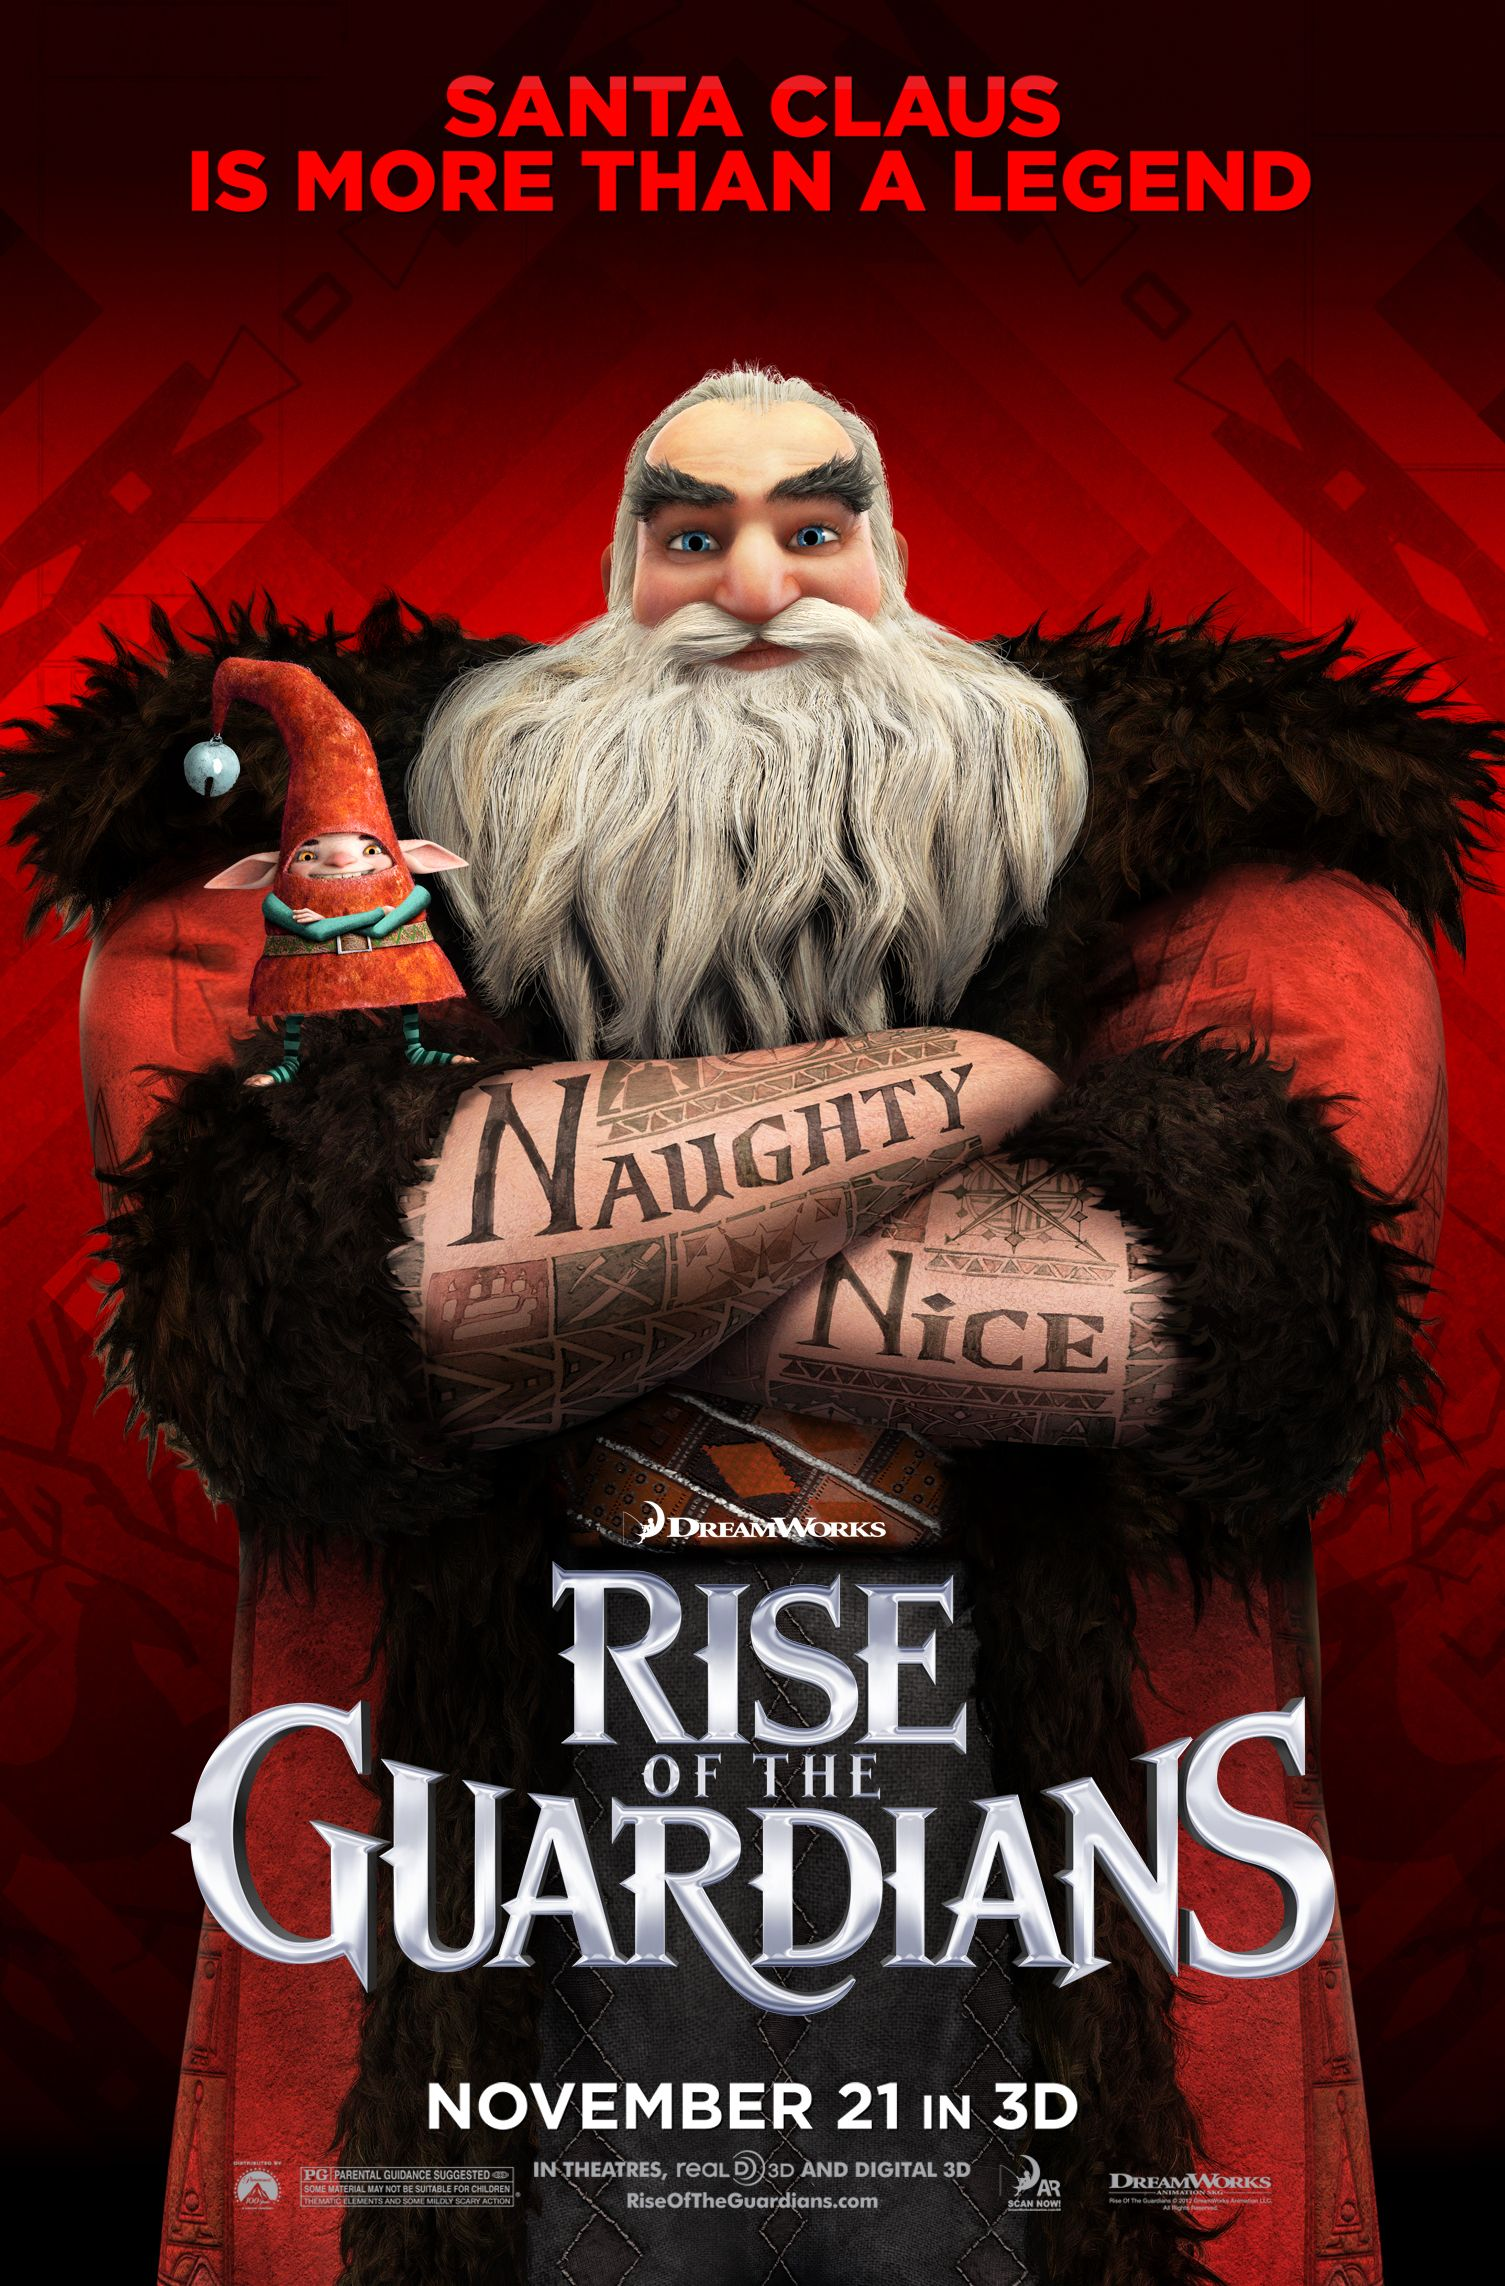 Santa Claus Is More Than A Legend Rise Of The Guardians Is Fantastic The Guardian Movie Rise Of The Guardians The Guardians Film